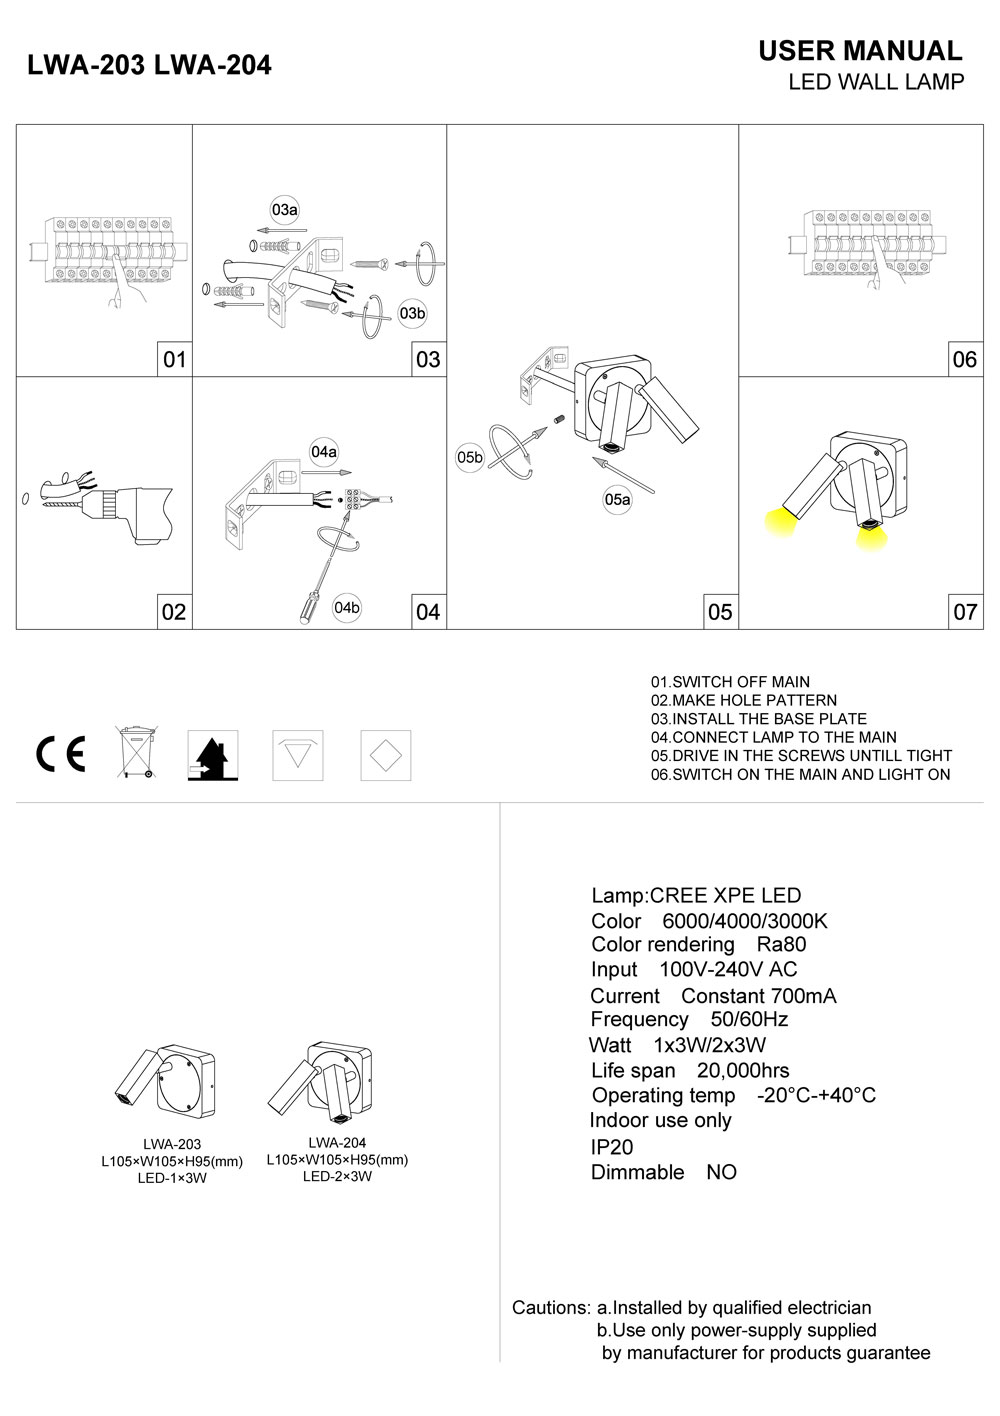 LWA203-204 LED reading light installation guide